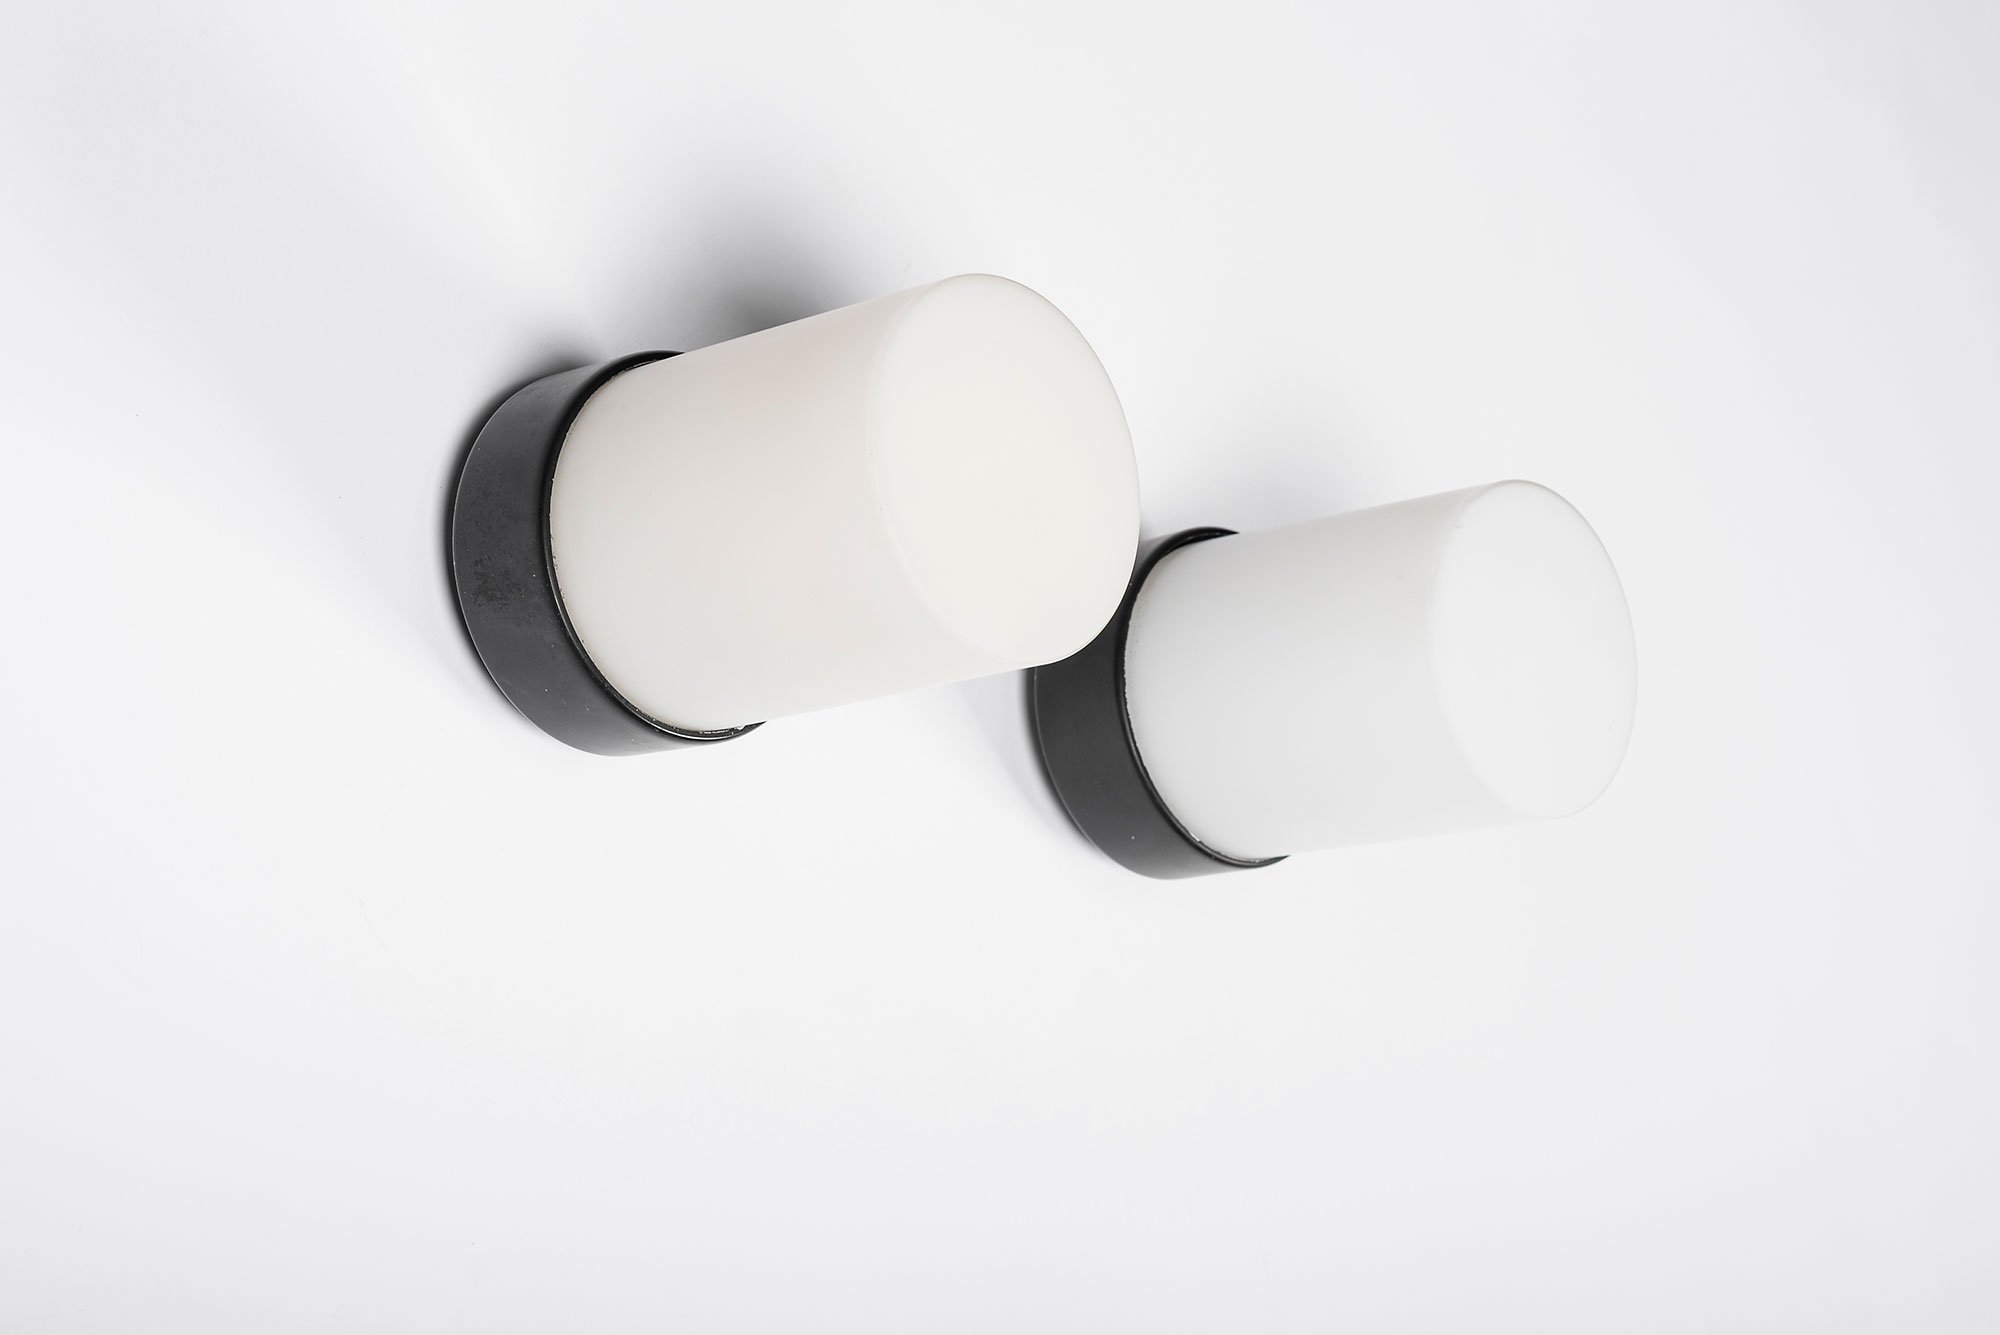 Gino Sarfatti  |   Pair of wall/ceiling lights, mod. 3031